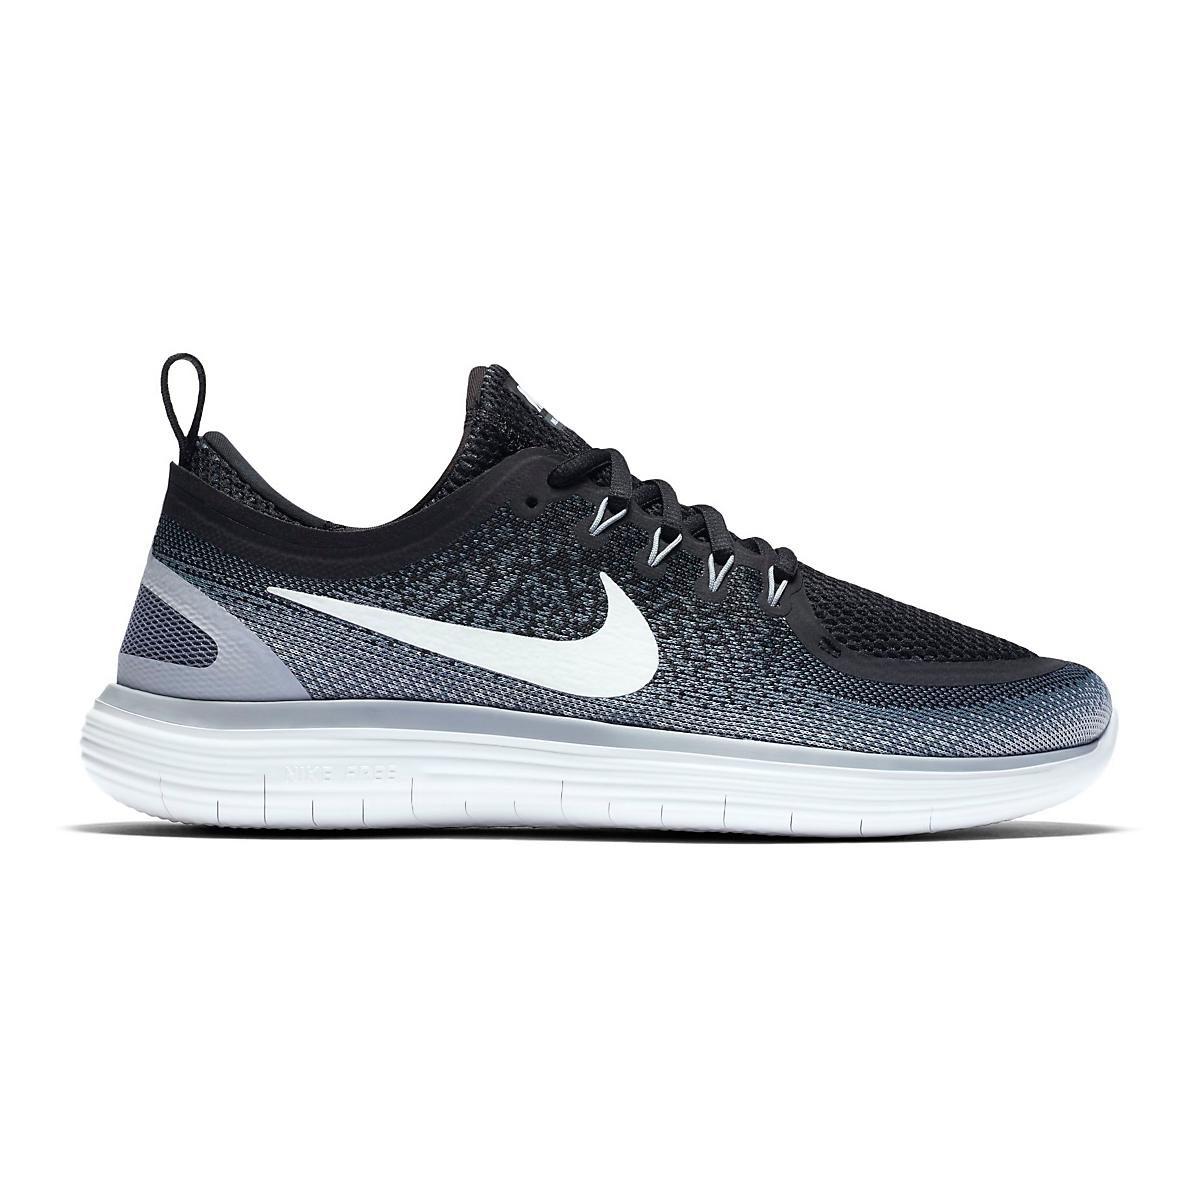 on sale 59a1b f111f ... real womens nike free rn distance 2 running shoe at road runner sports  cba33 0ef48